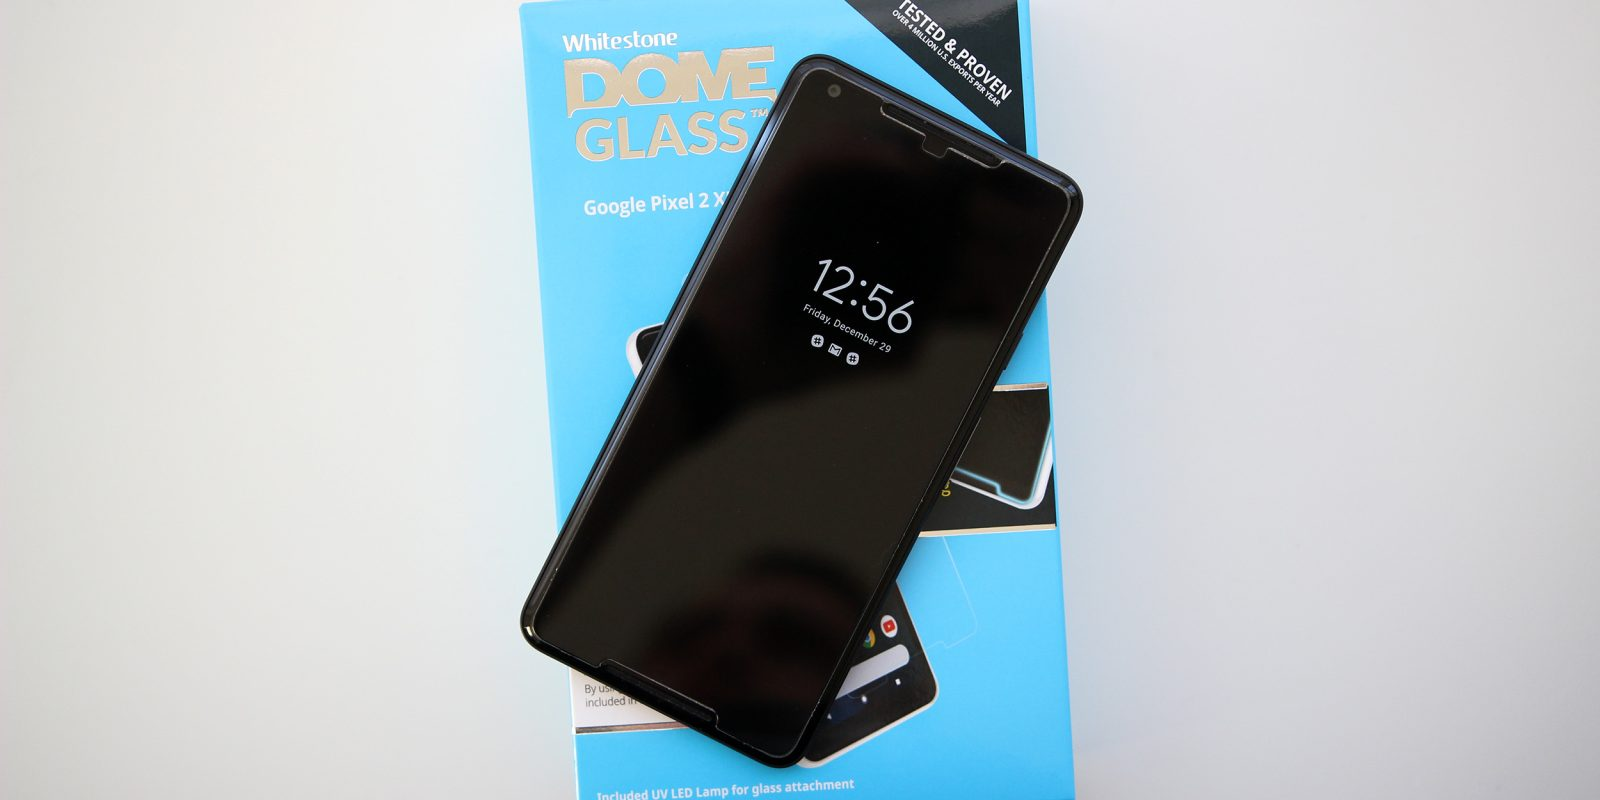 Hands-on: Whitestone Dome Glass makes essentially the perfect screen